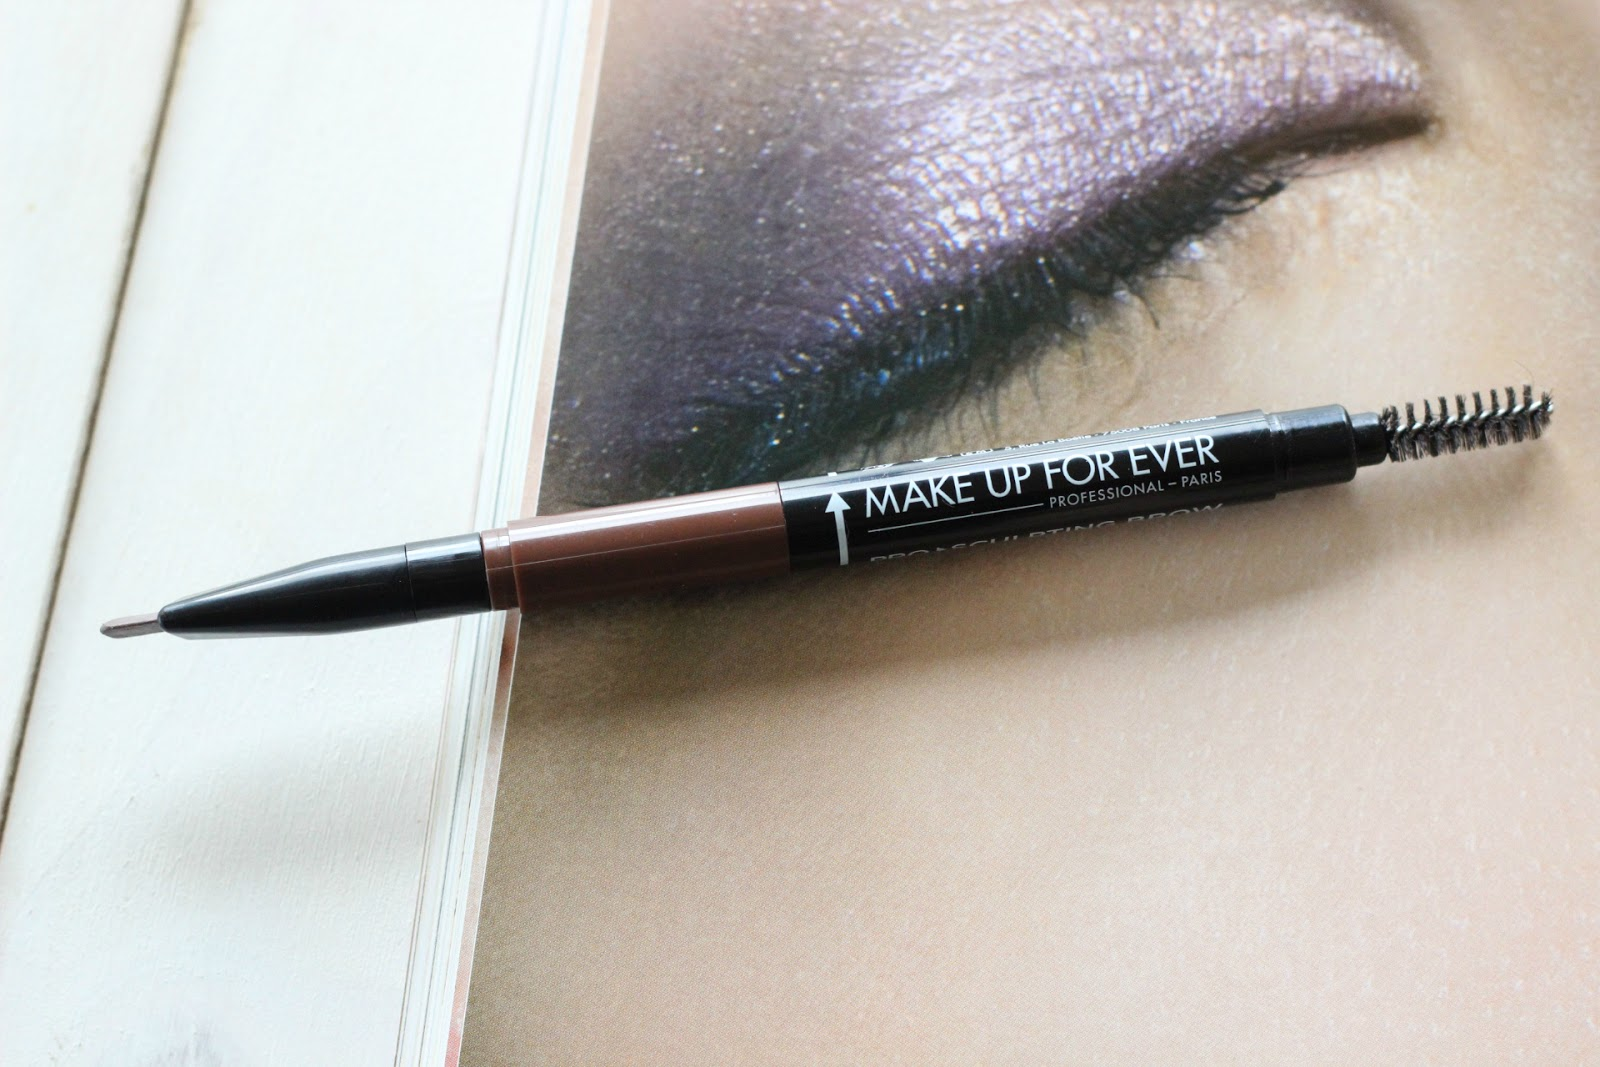 Makeup Forever Pro Sculpting Brow 3 in 1 Brow Sculpting Pen